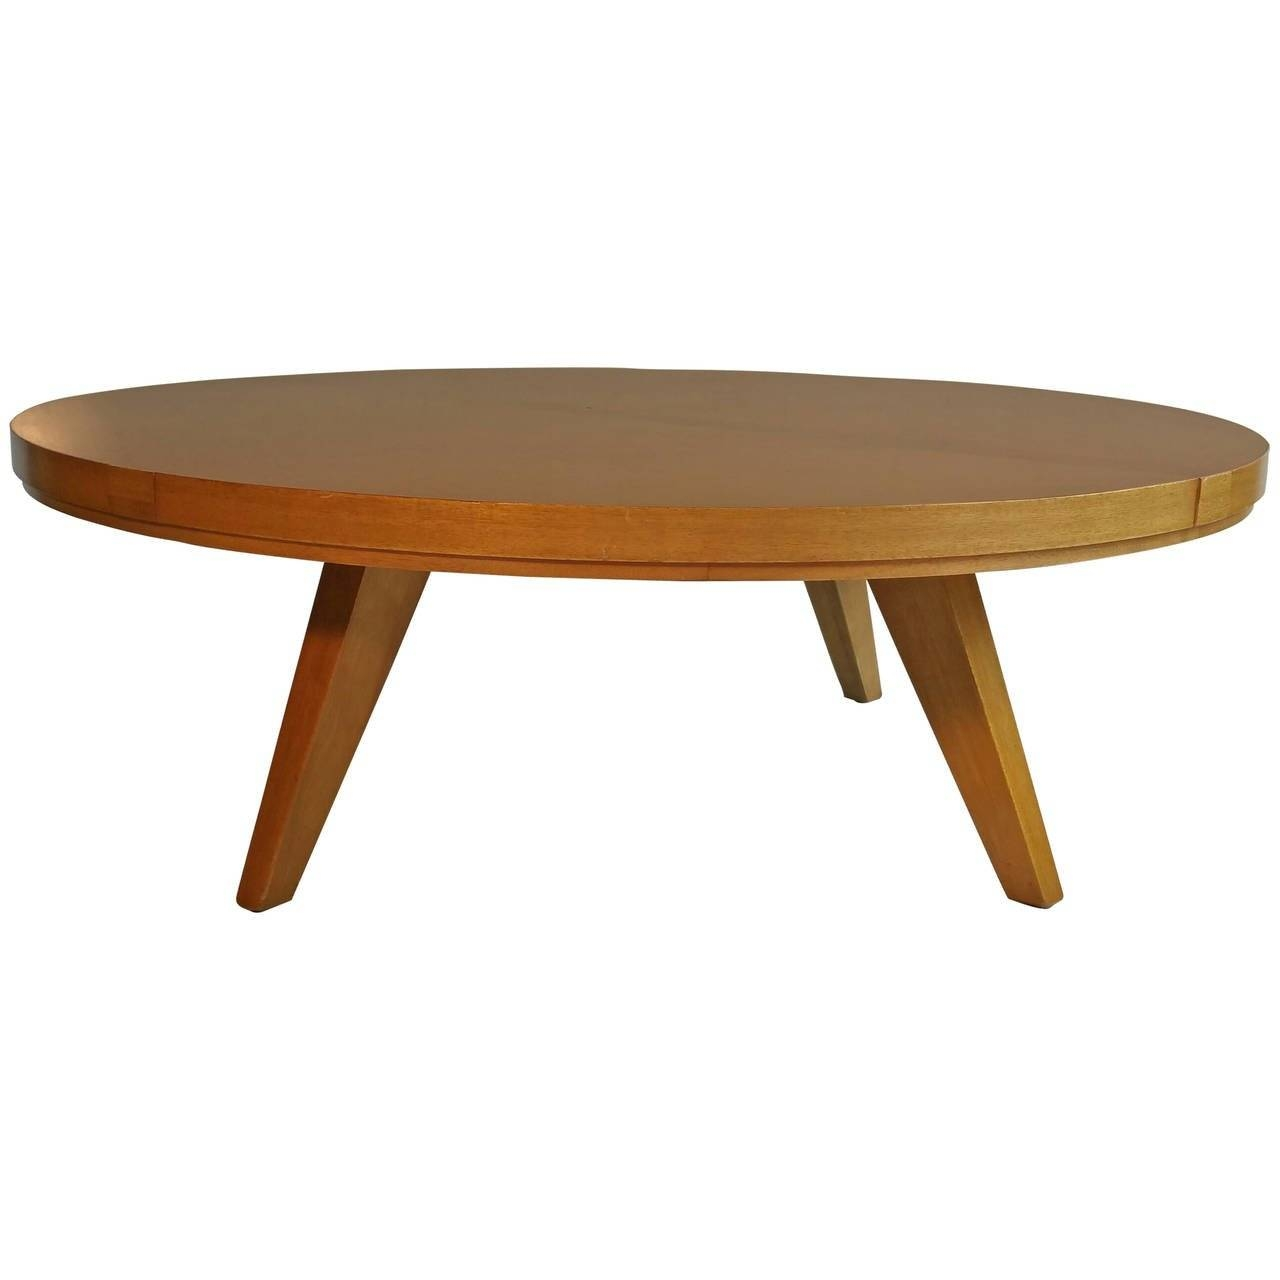 Classic Mid-Century Modern Coffee Table, Red Lion, Architecturally with regard to Wood Modern Coffee Tables (Image 2 of 30)